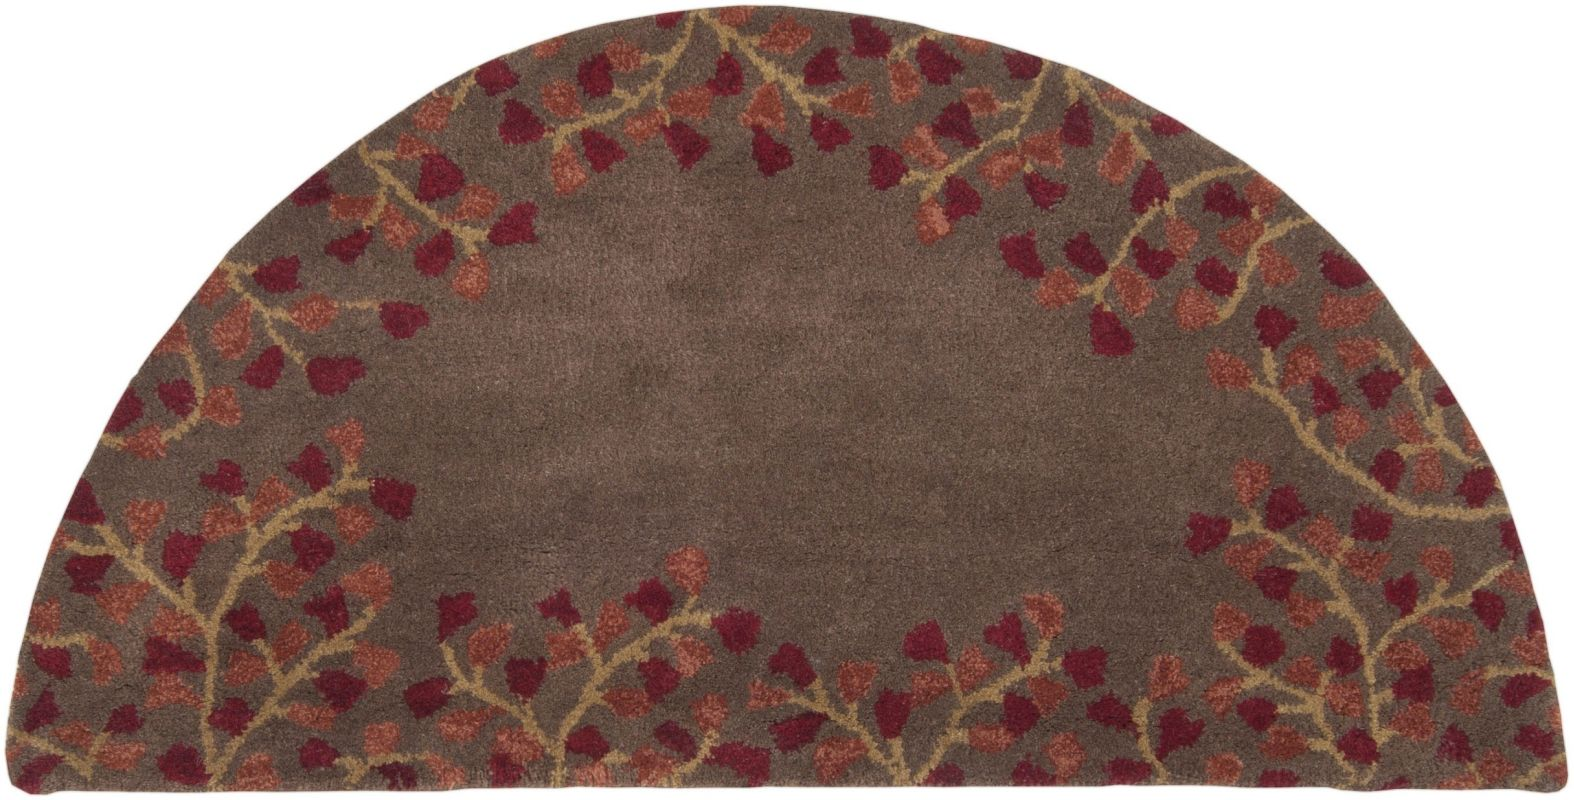 Surya ATH-5003 Athena Hand Tufted Wool Rug Red 8 x 11 Home Decor Rugs